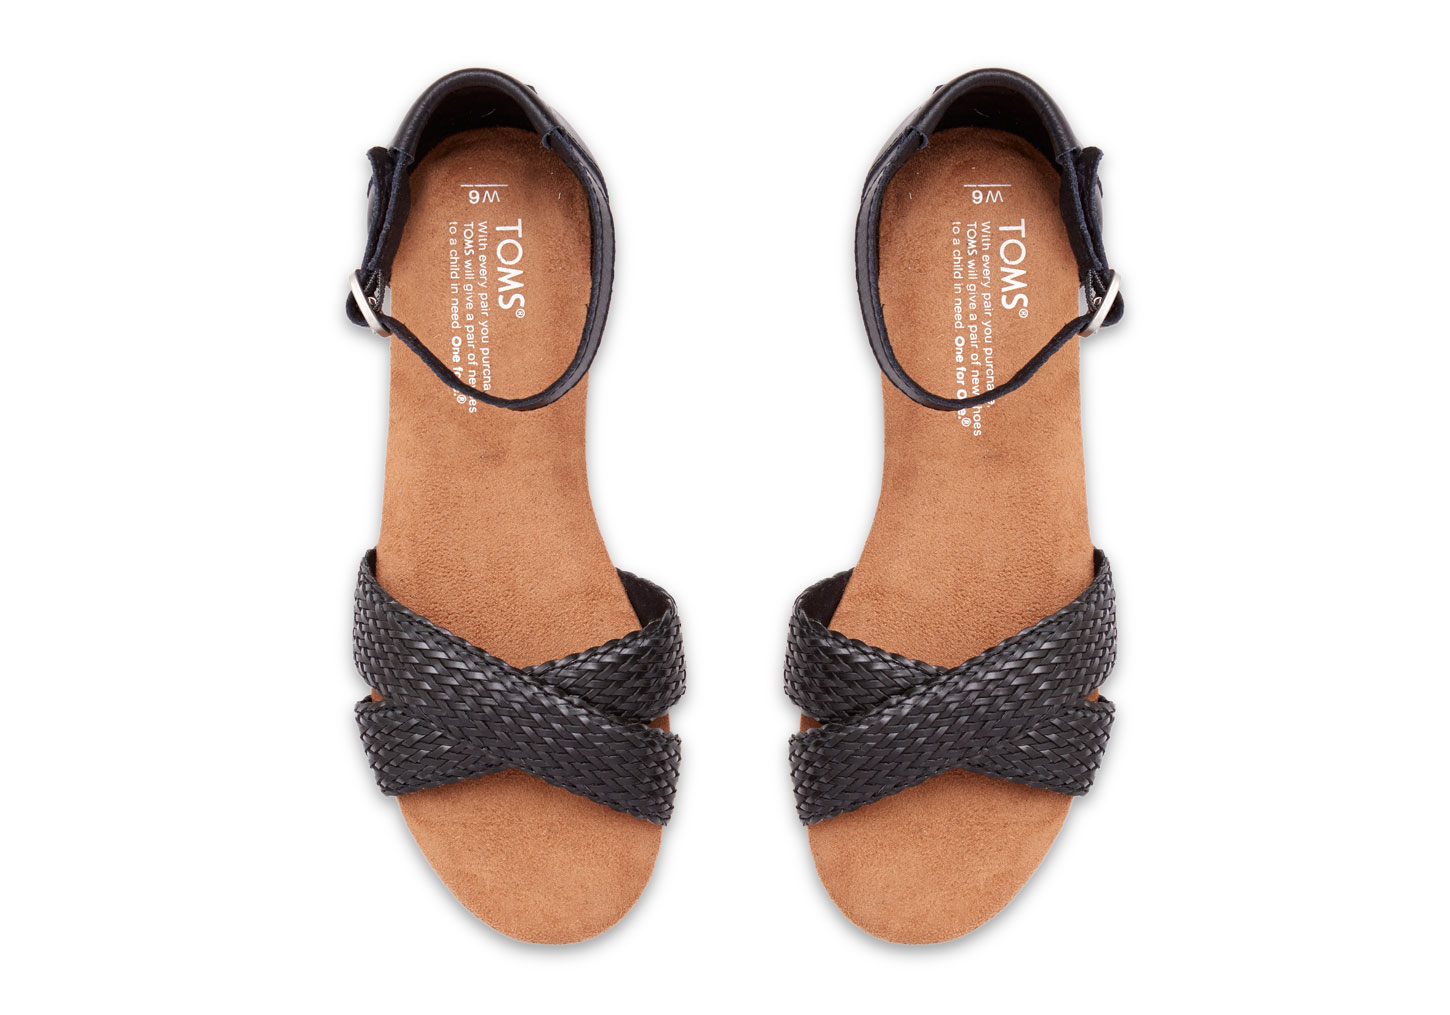 1addfc85e19 Lyst - Toms Black Woven Women s Correa Sandals in Black